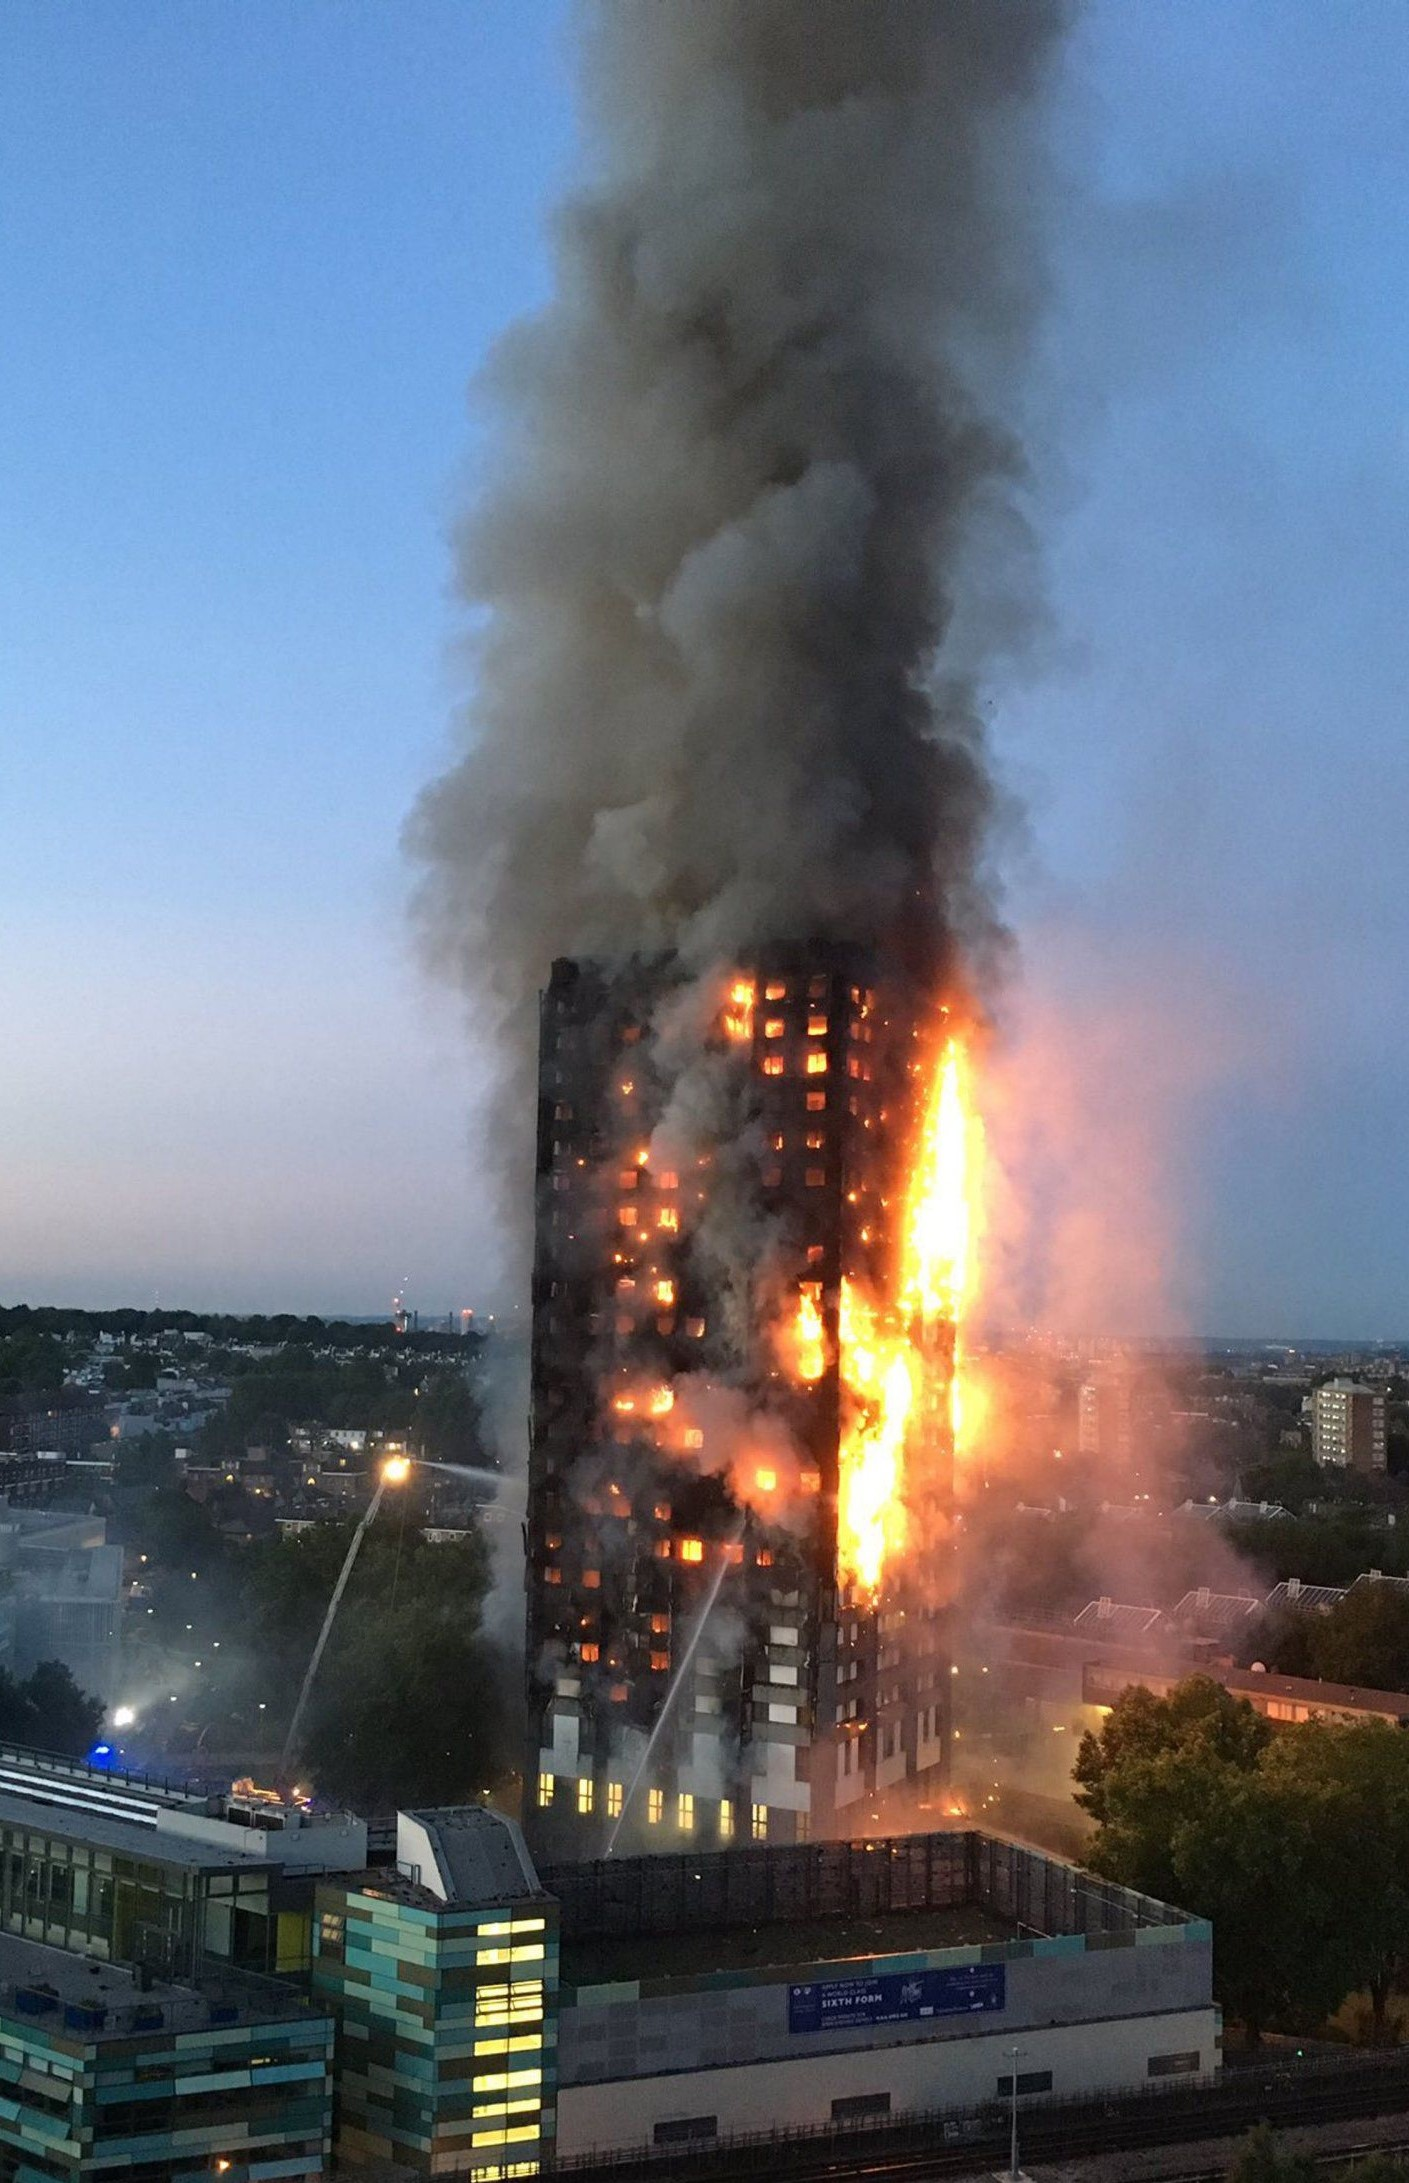 Ar Cj Walsh Consultant Architect Fire Engineer Technical Solar Panel Circuit The Heads On Community Colour Photograph Showing Developed At Grenfell Tower In London Bottom Of External Firefighting Operations Can Be Viewed